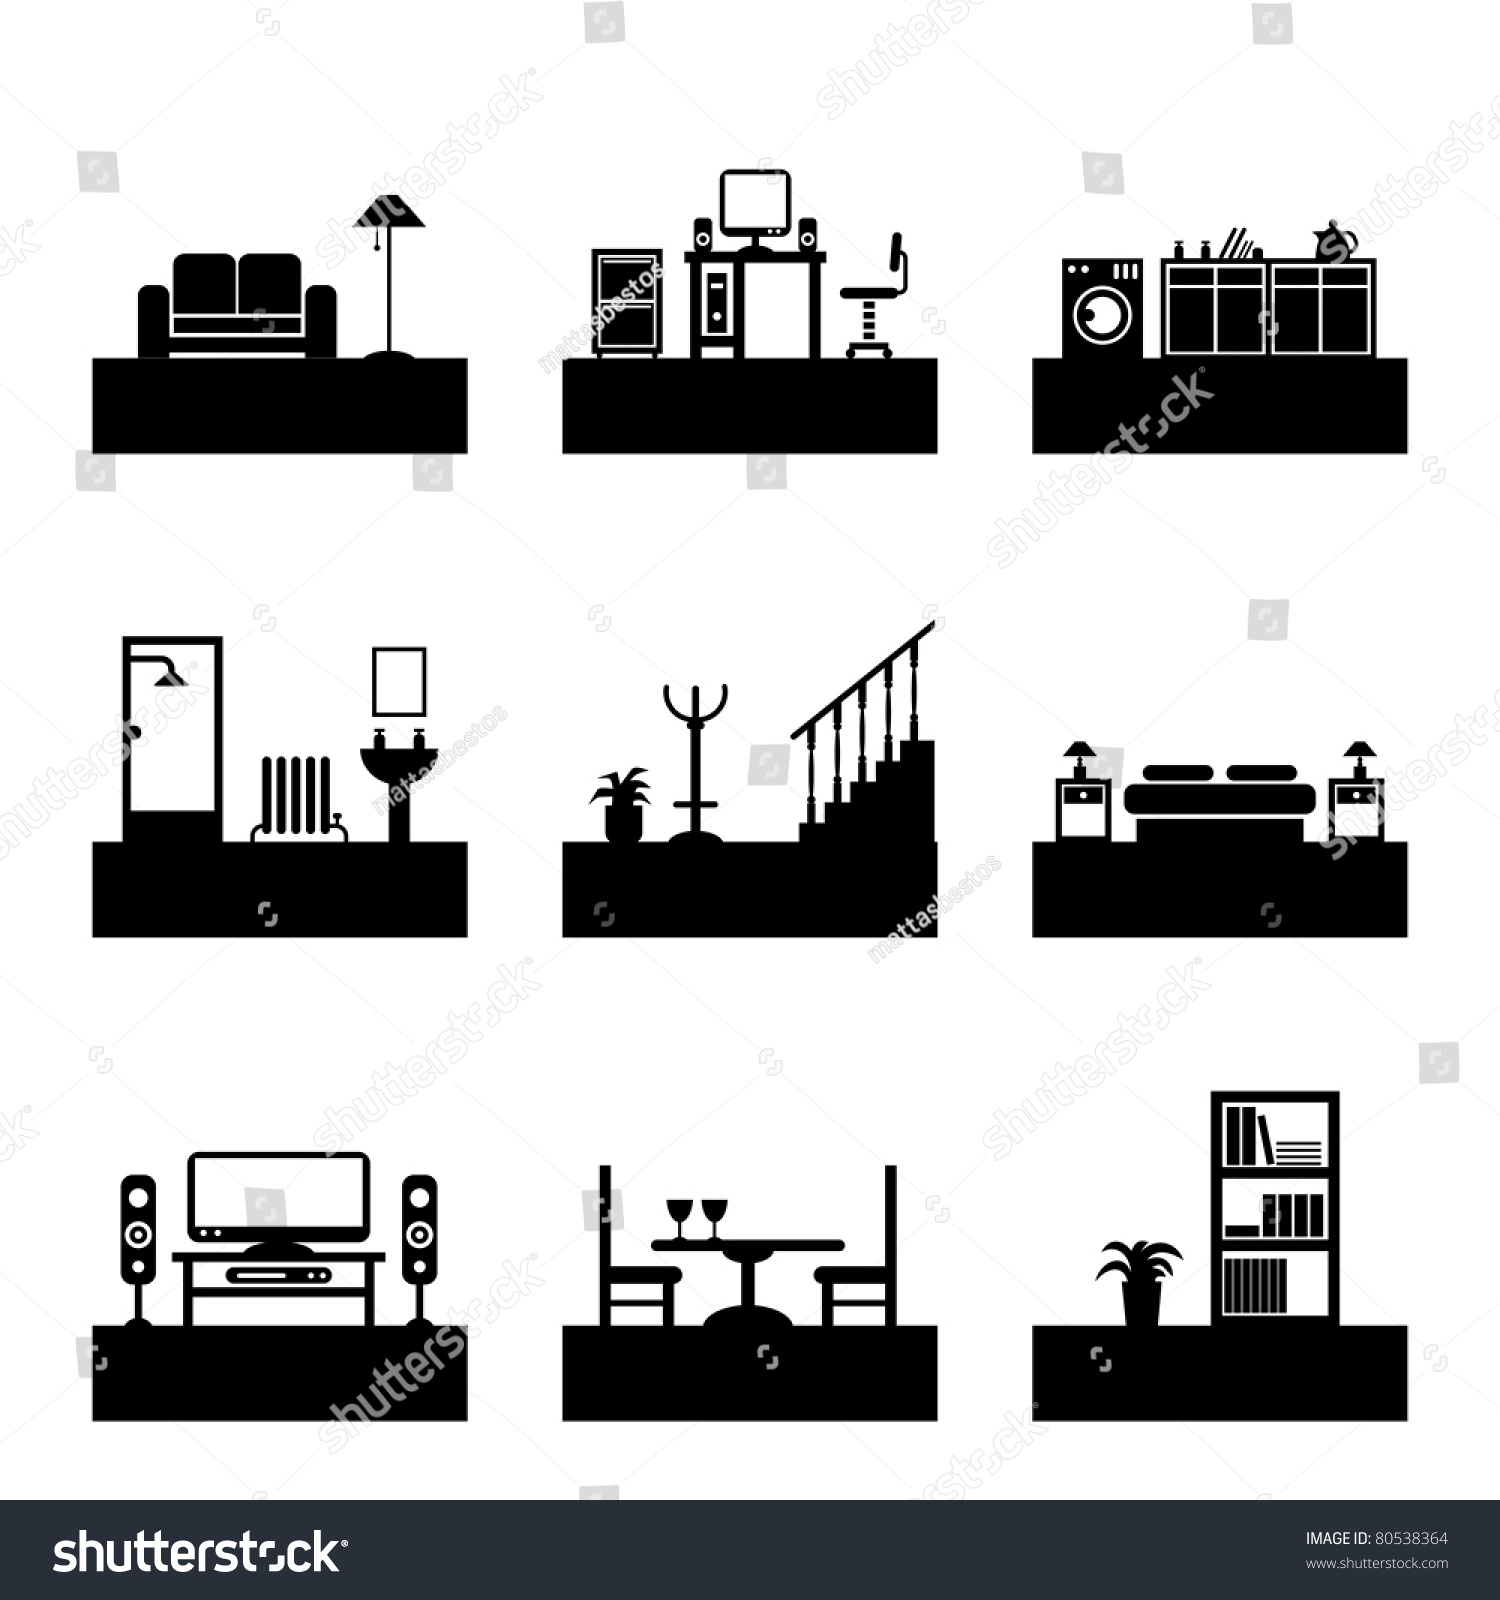 Home interior design silhouette icons easily stock vector for Interior design images vector